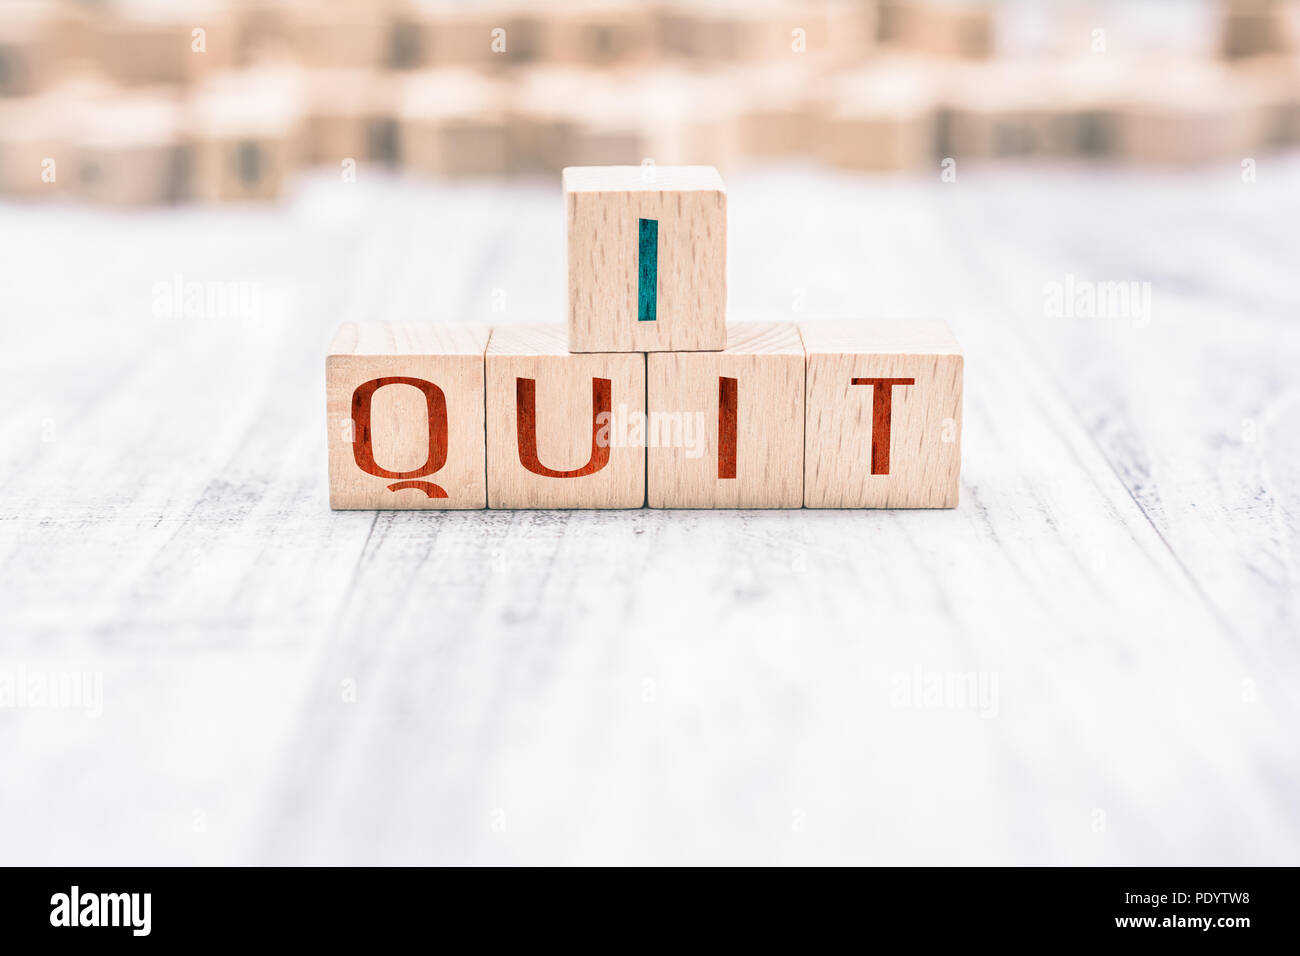 The Words I Quit Formed By Wooden Blocks On A White Table - Stock Image